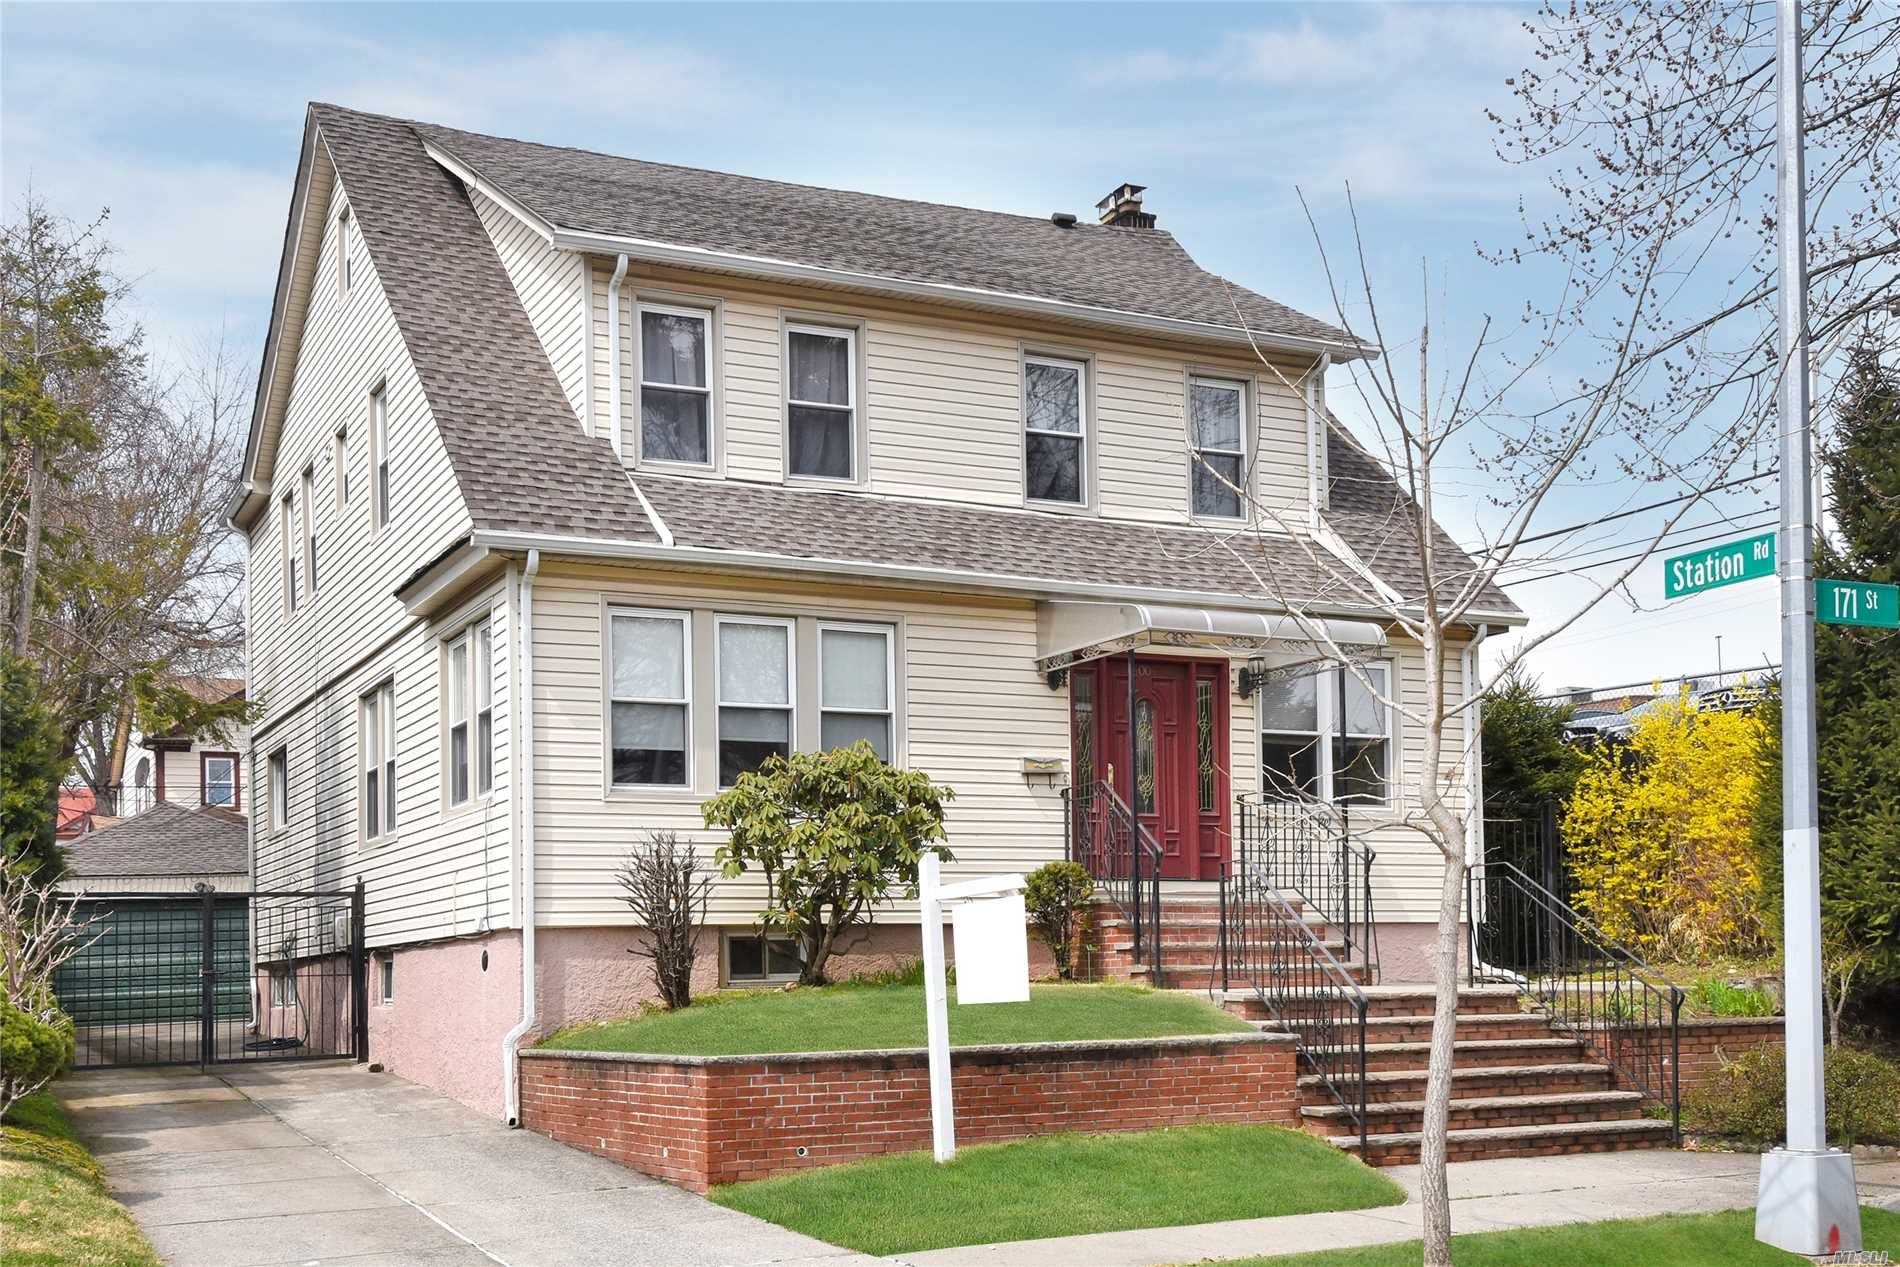 40-04 171st St 11358 - One of Flushing Homes for Sale